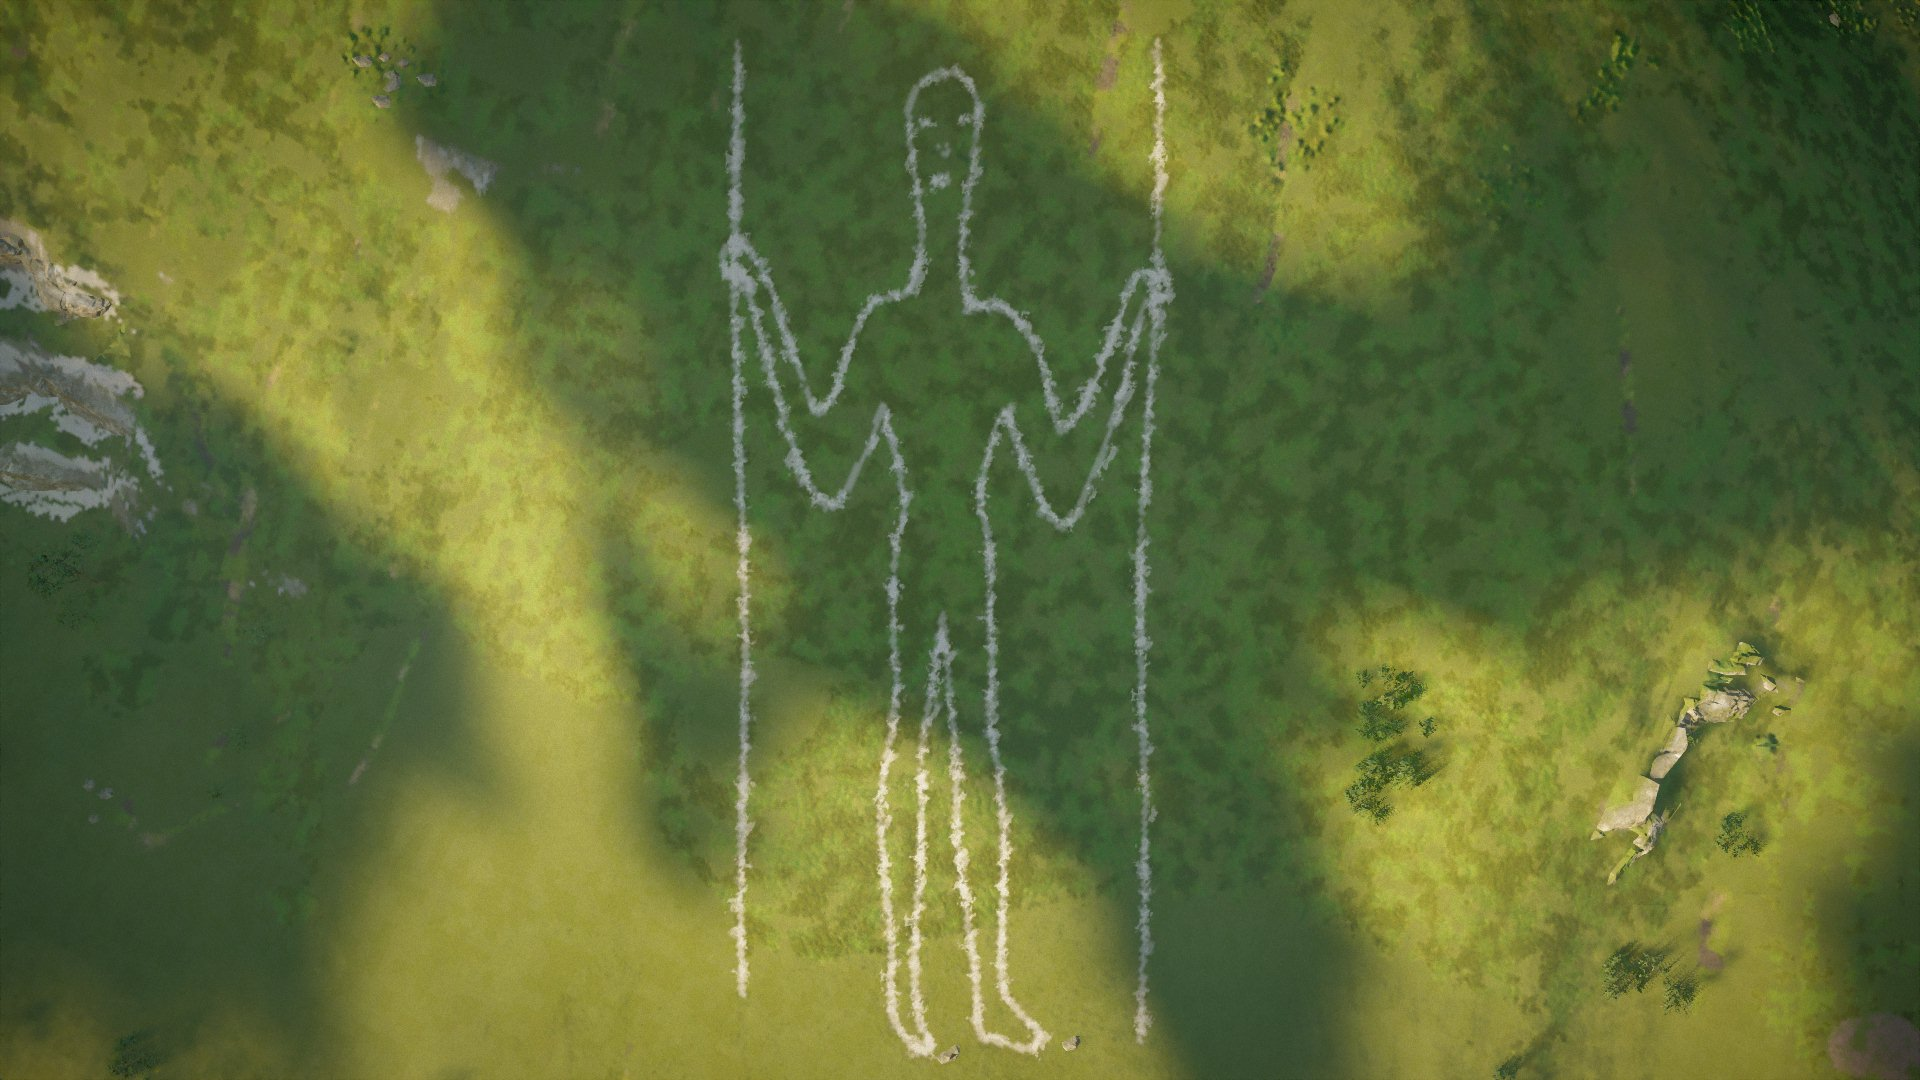 Aerial shot of the Long Man of Wilmington in East Sussex. Flat Space using Frontal Planes (Block, 43-44)